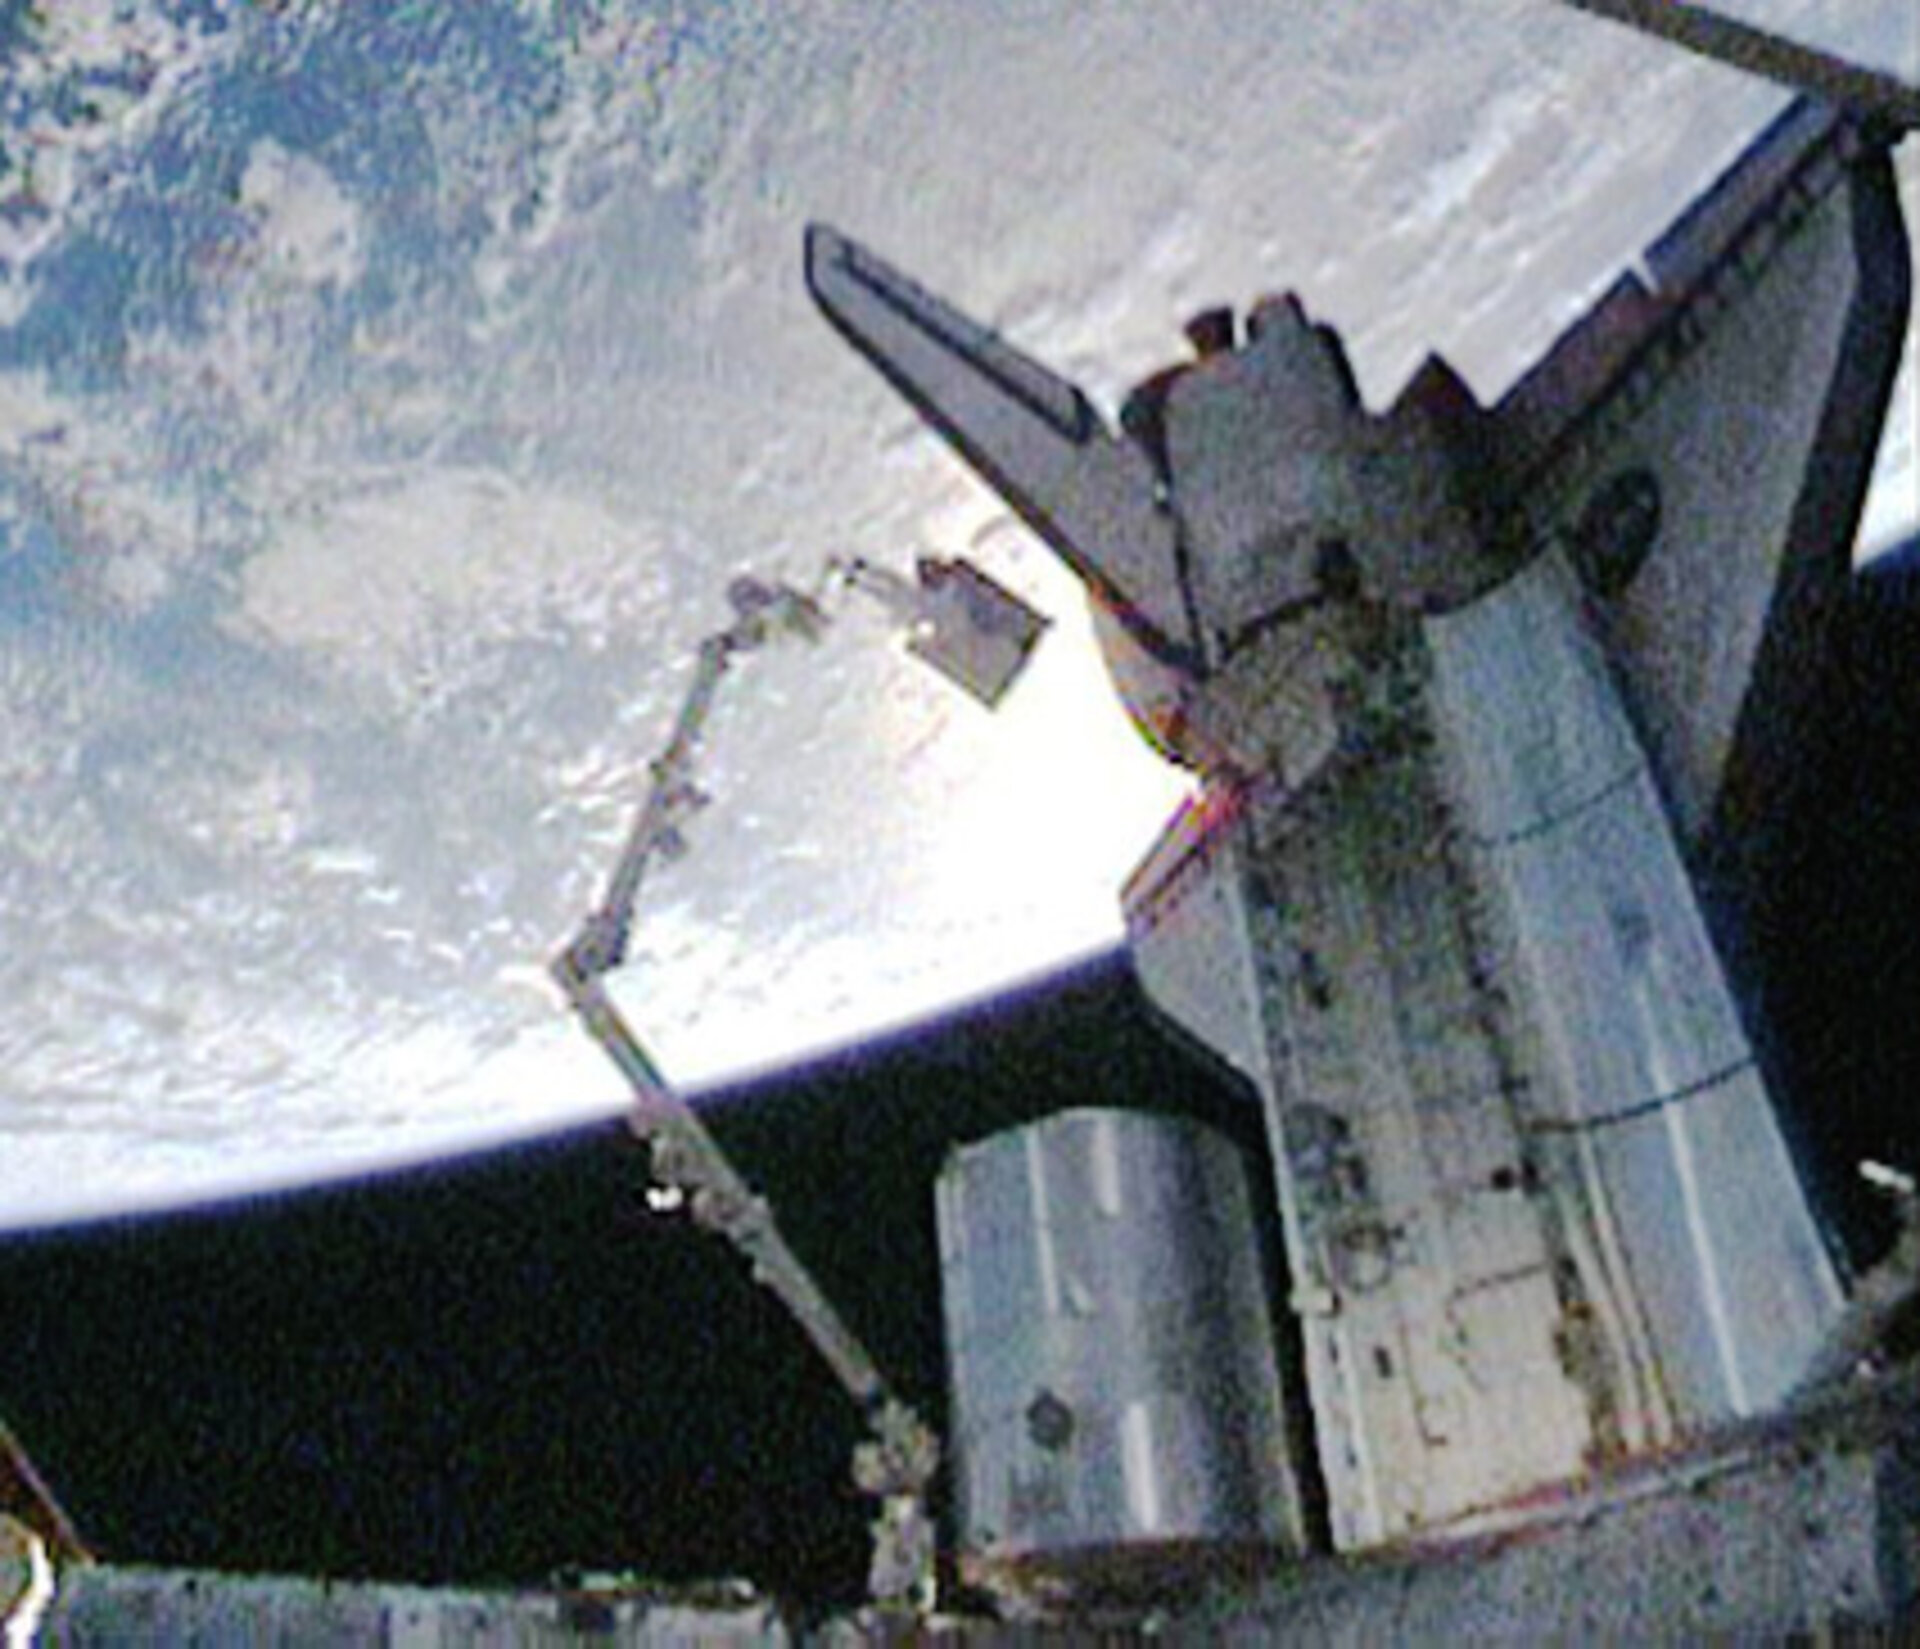 Christer Fuglesang rides the Shuttle robotic arm during the second STS-128 spacewalk